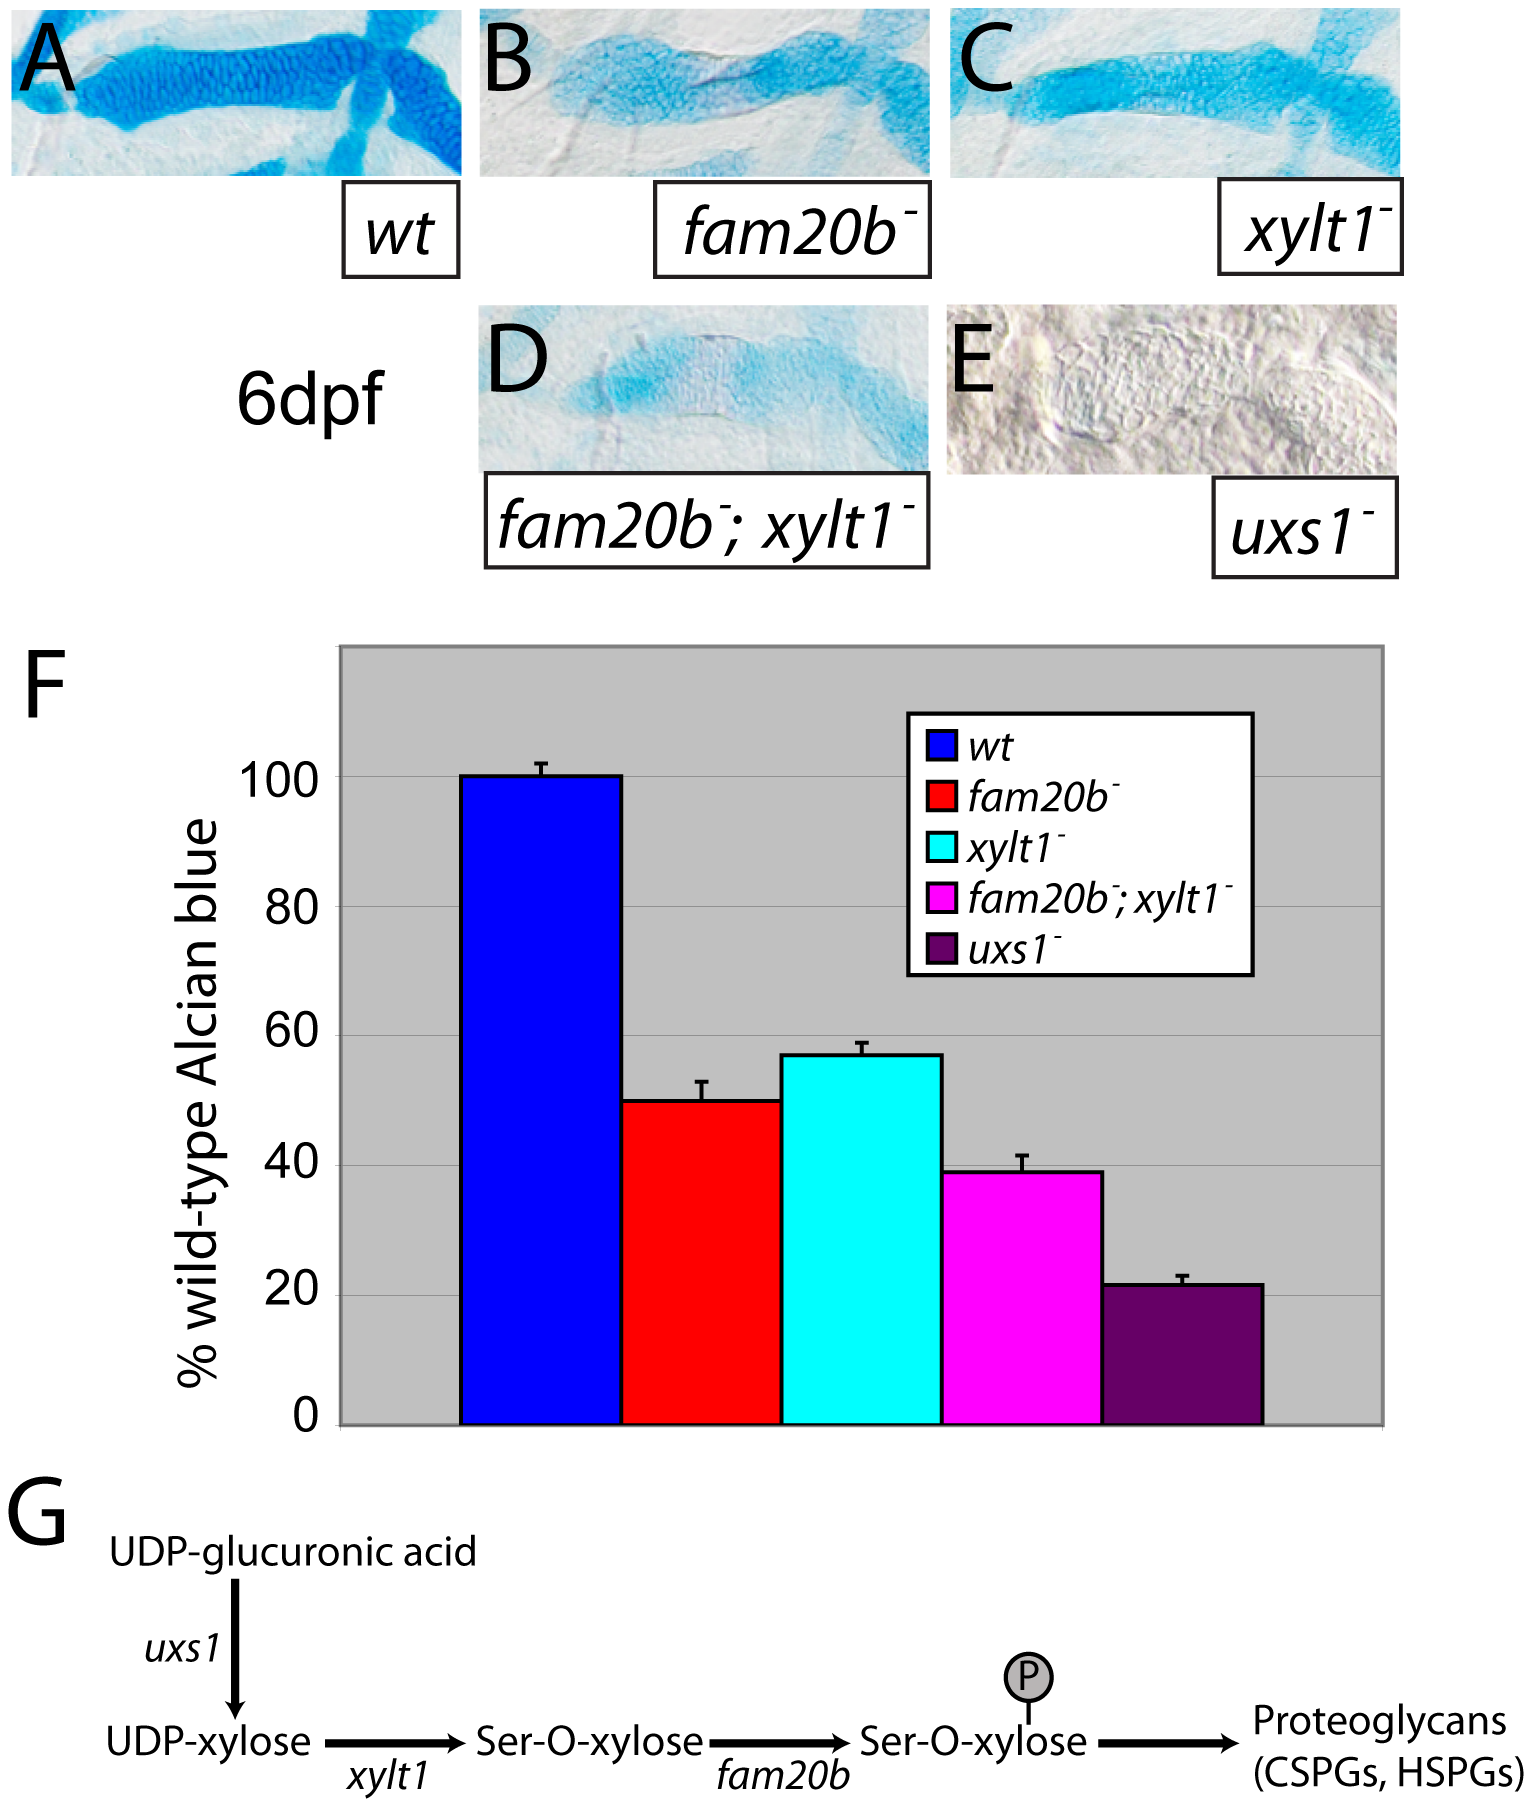 Reduction of Alcian blue staining in <i>fam20b</i> and <i>xylt1</i> mutants is less severe than in <i>uxs1</i> mutants.